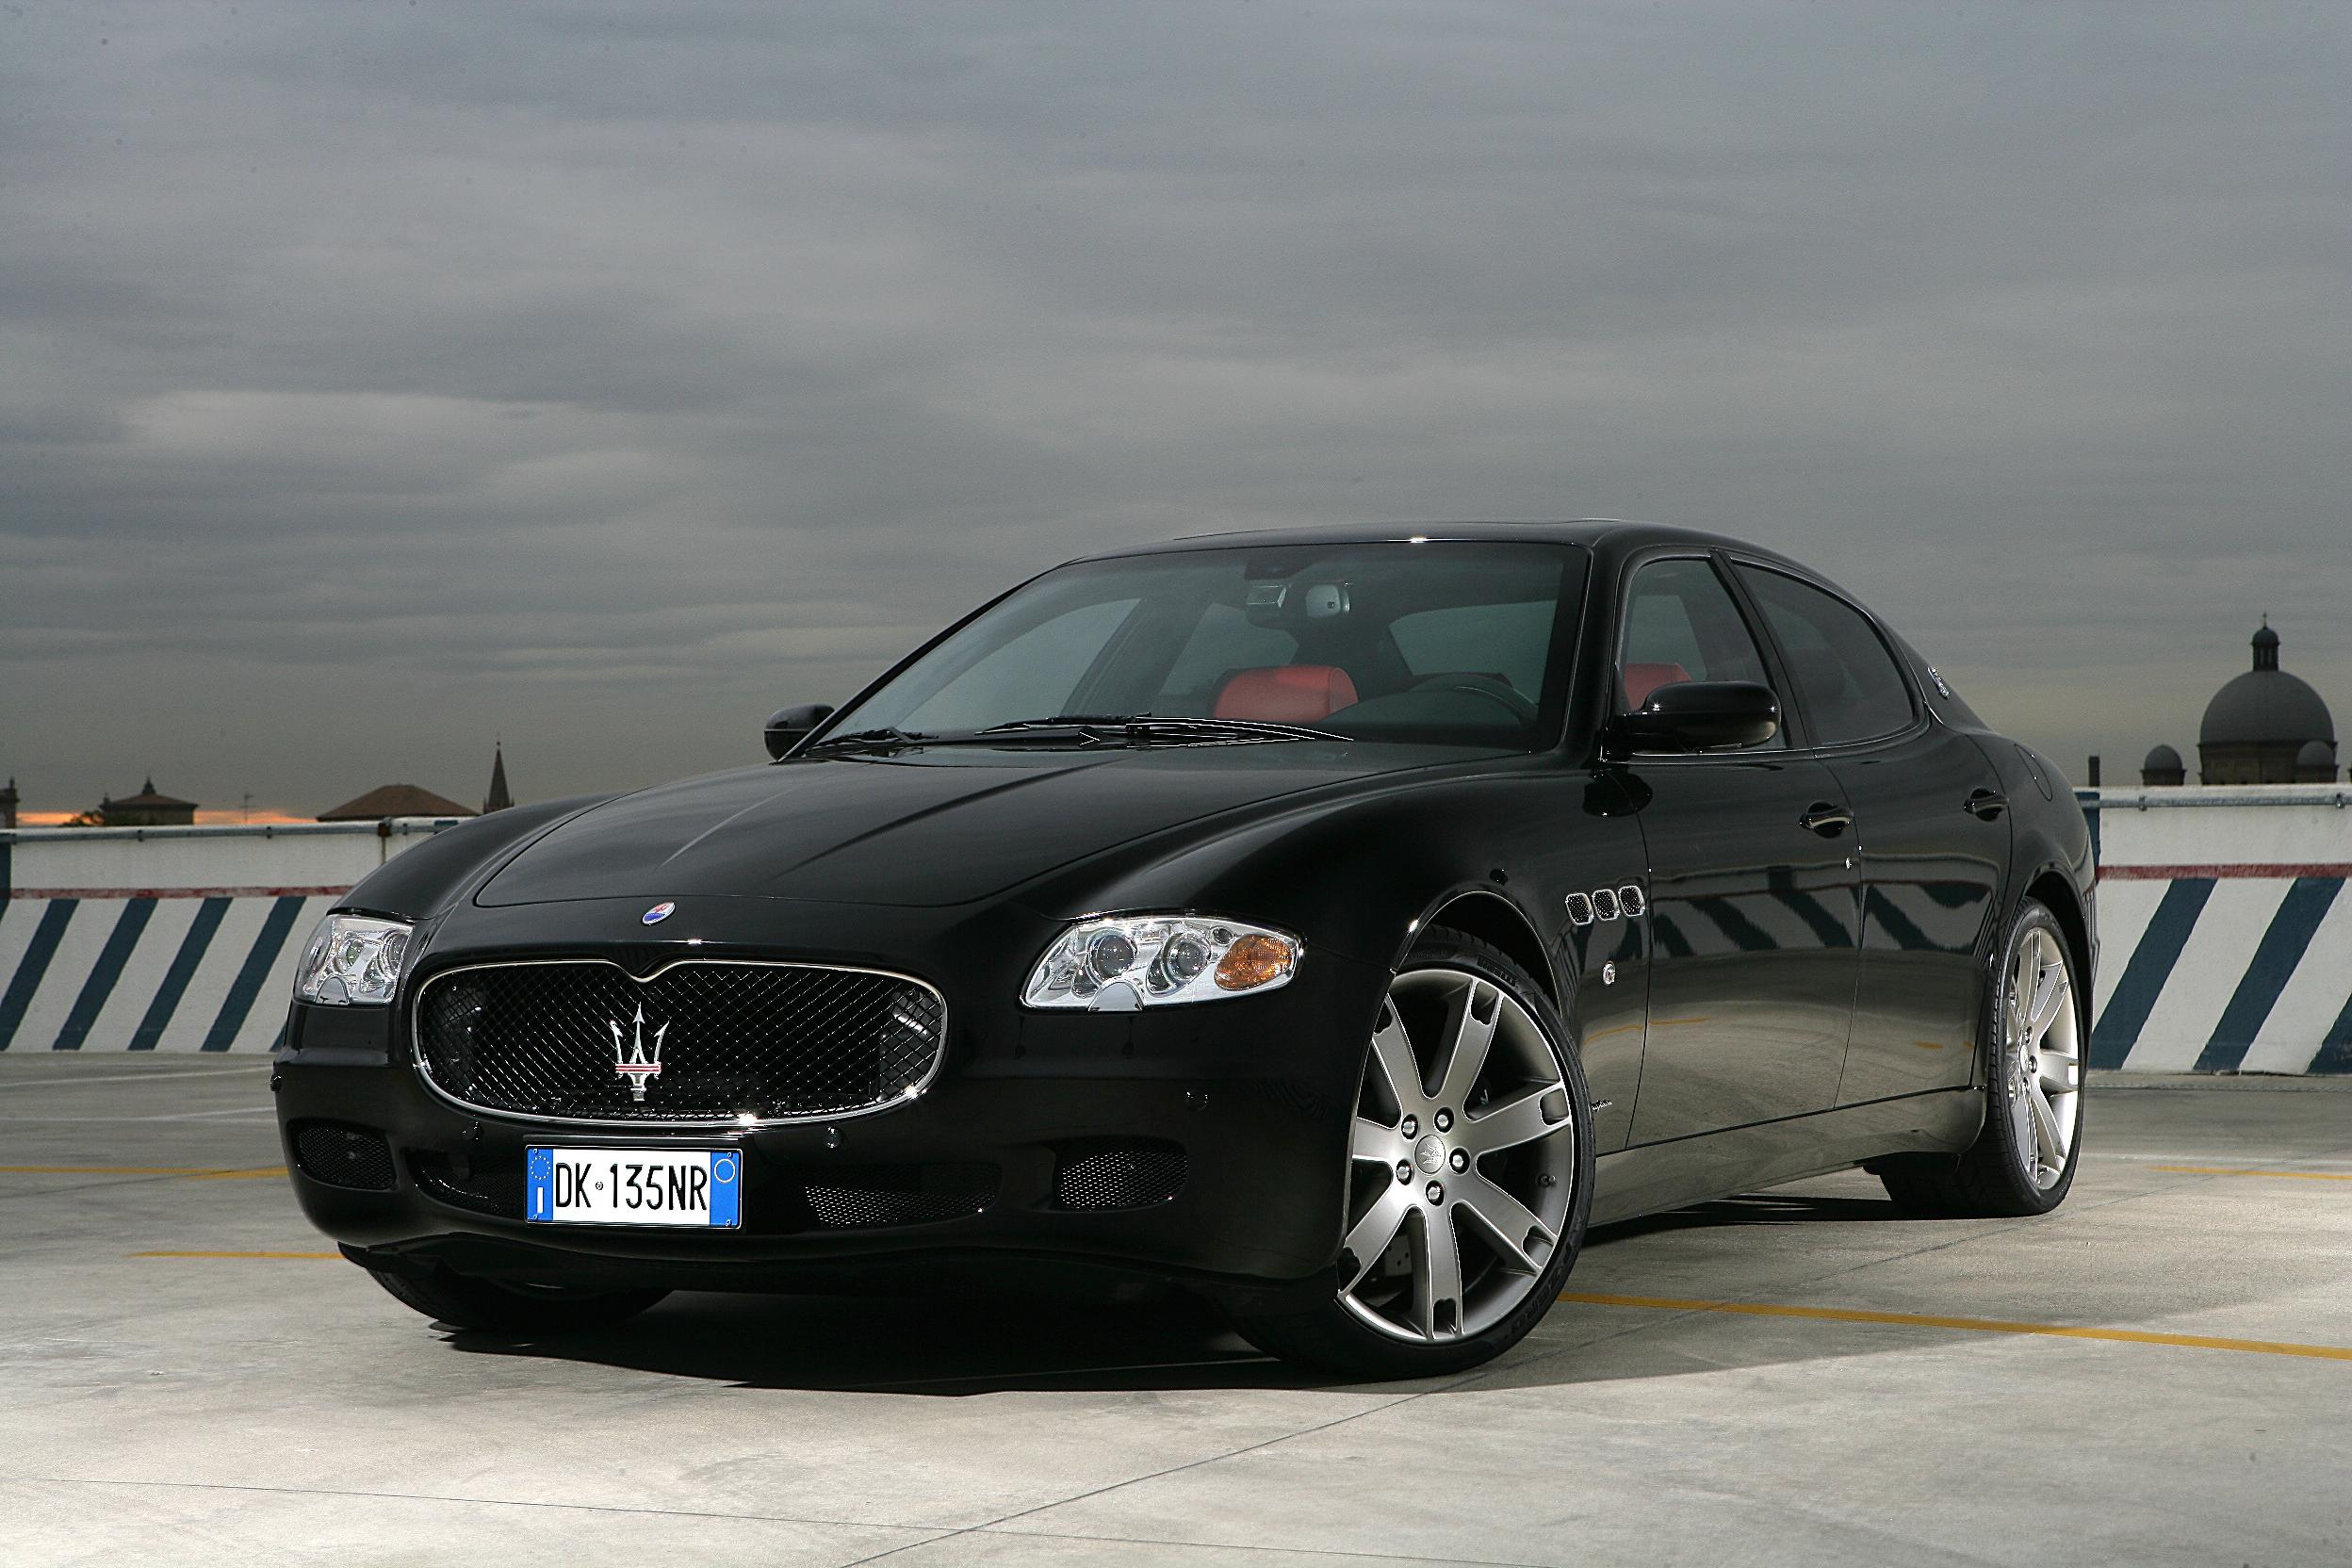 maserati quattroporte auto specifiche tecniche e il consumo di carburante. Black Bedroom Furniture Sets. Home Design Ideas